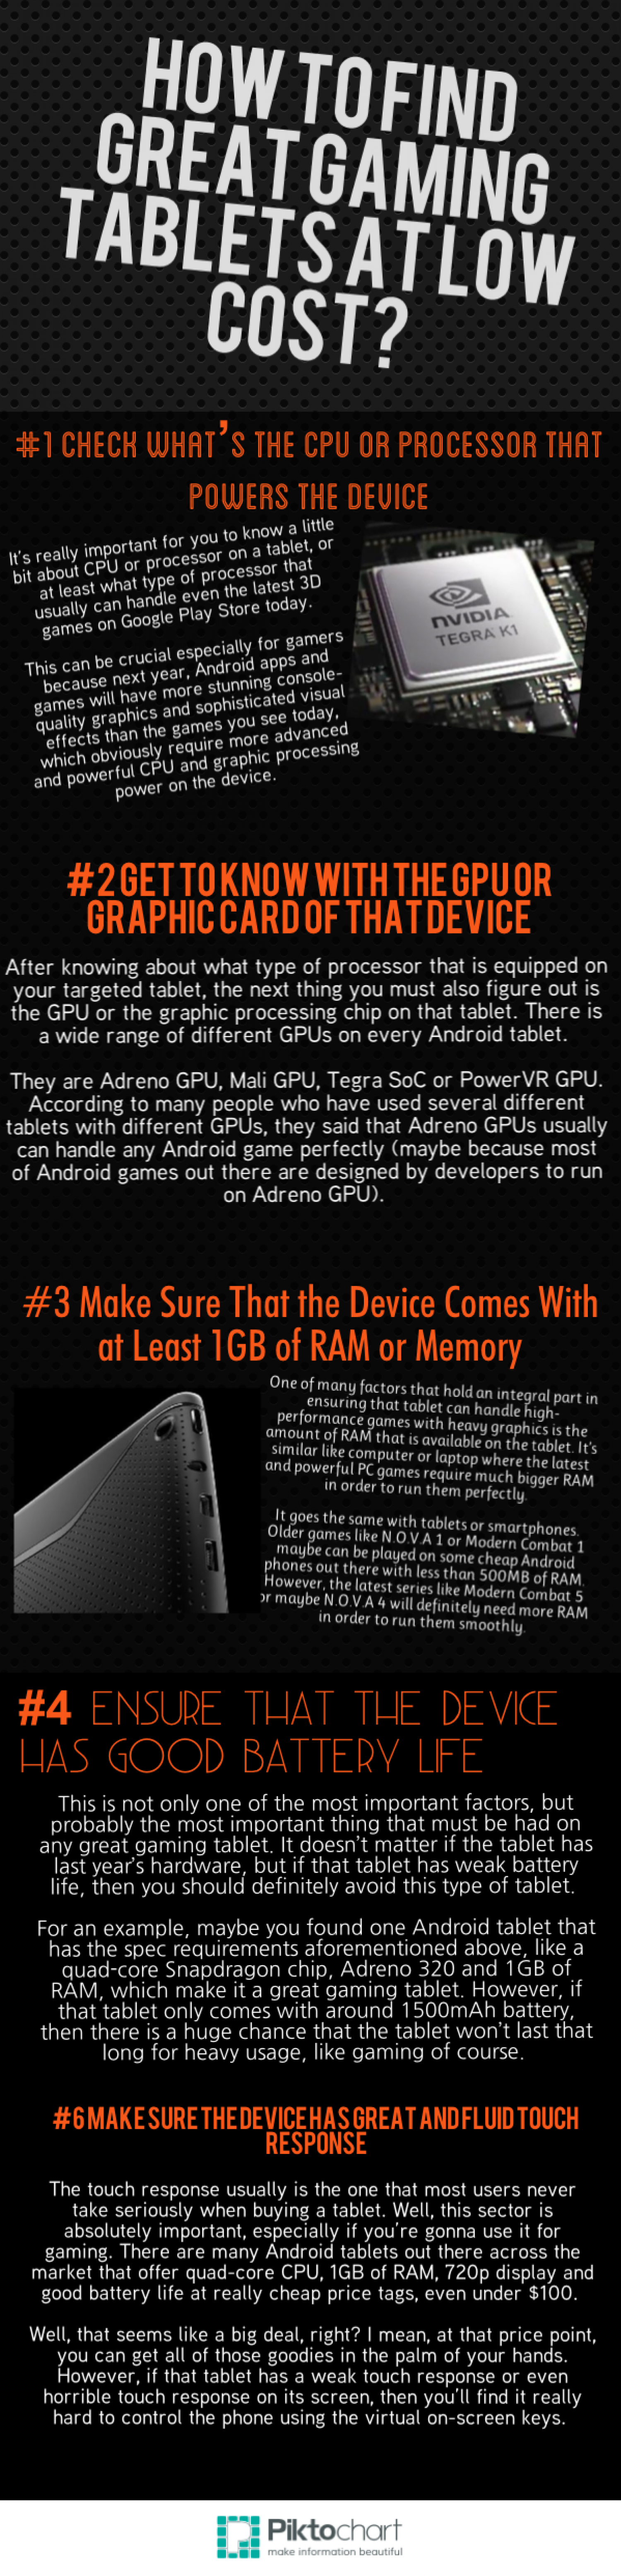 How to Find Great Gaming Tablets at Low Cost? Infographic